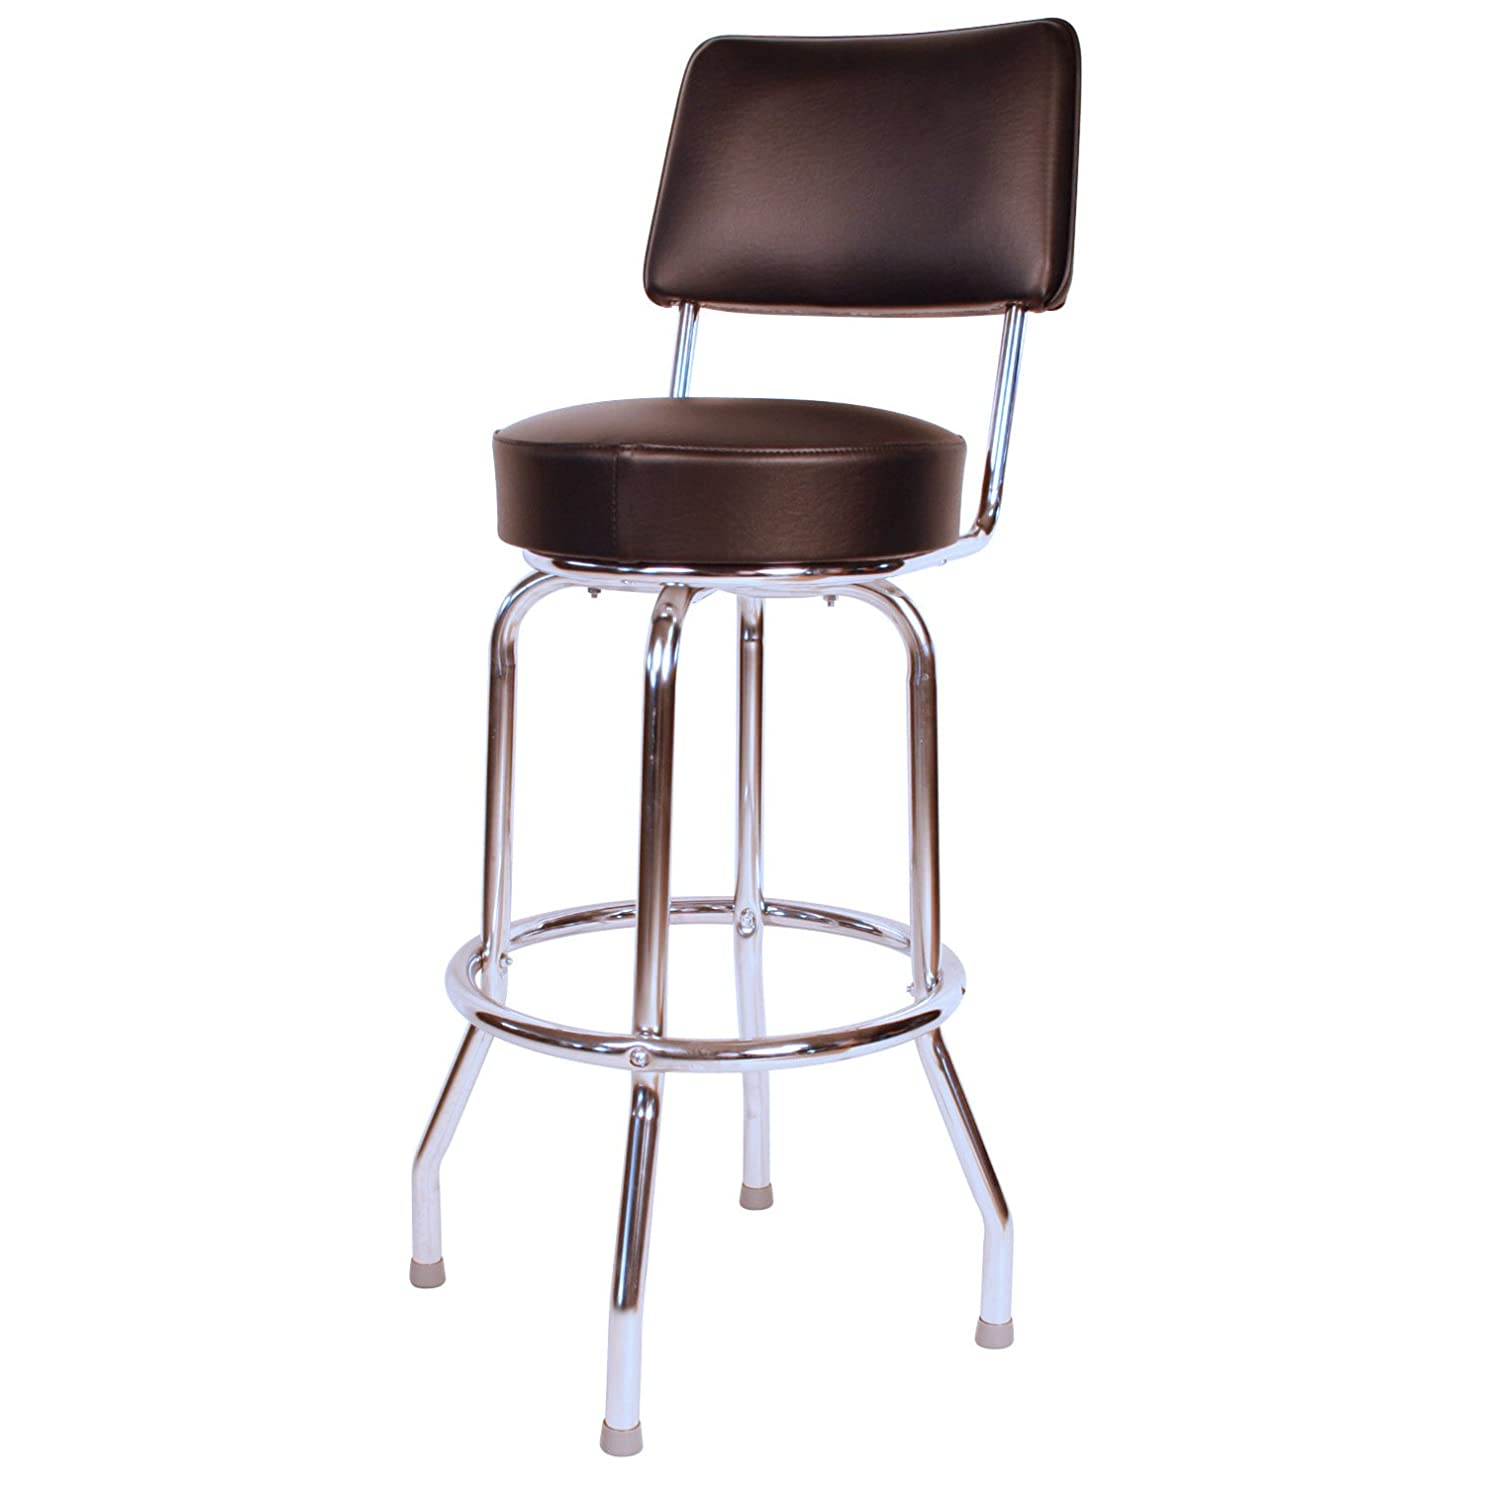 pneumatic bikers stool shop seat metal shop stools